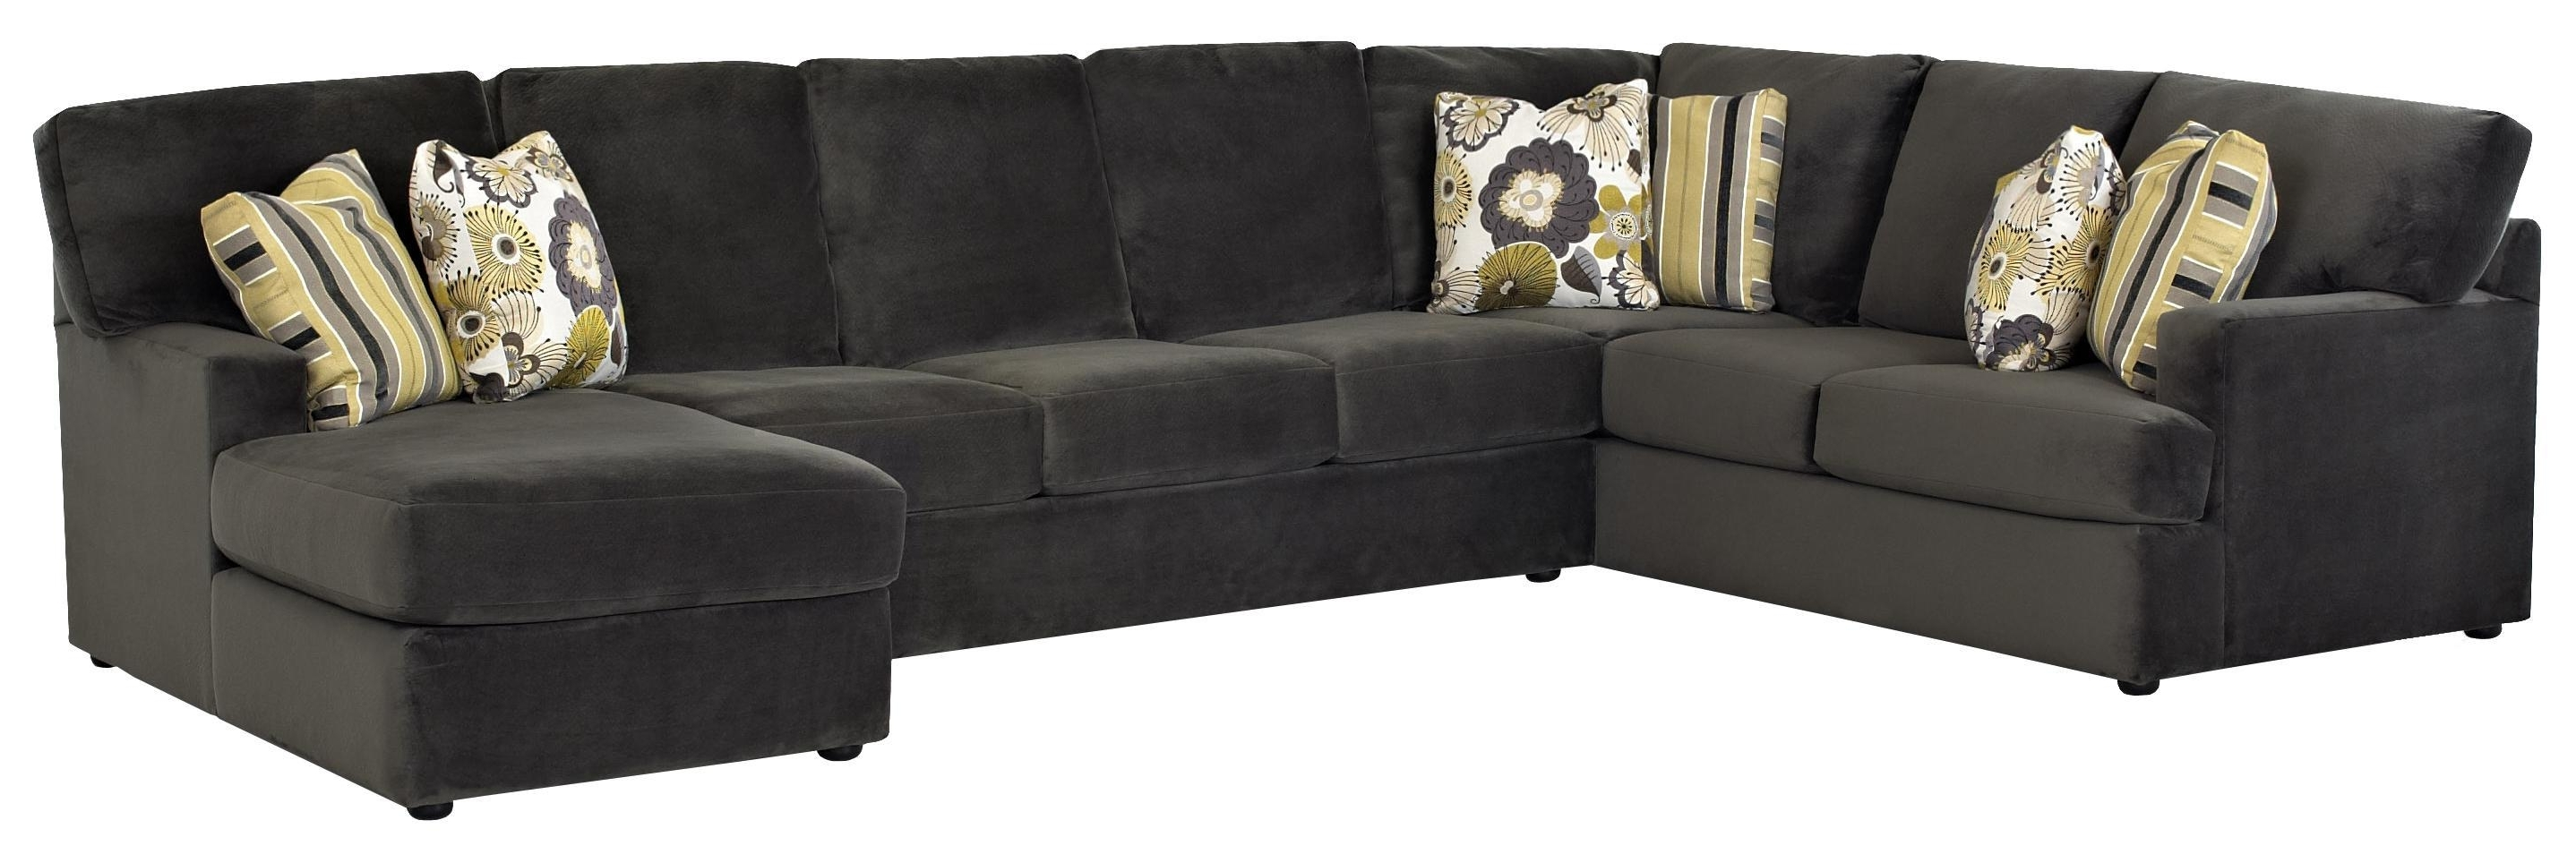 Fashionable Haynes Sectional Sofas Throughout Stunning The Dump Furniture Sectional Sofa For Home Pic Haynes (View 13 of 15)